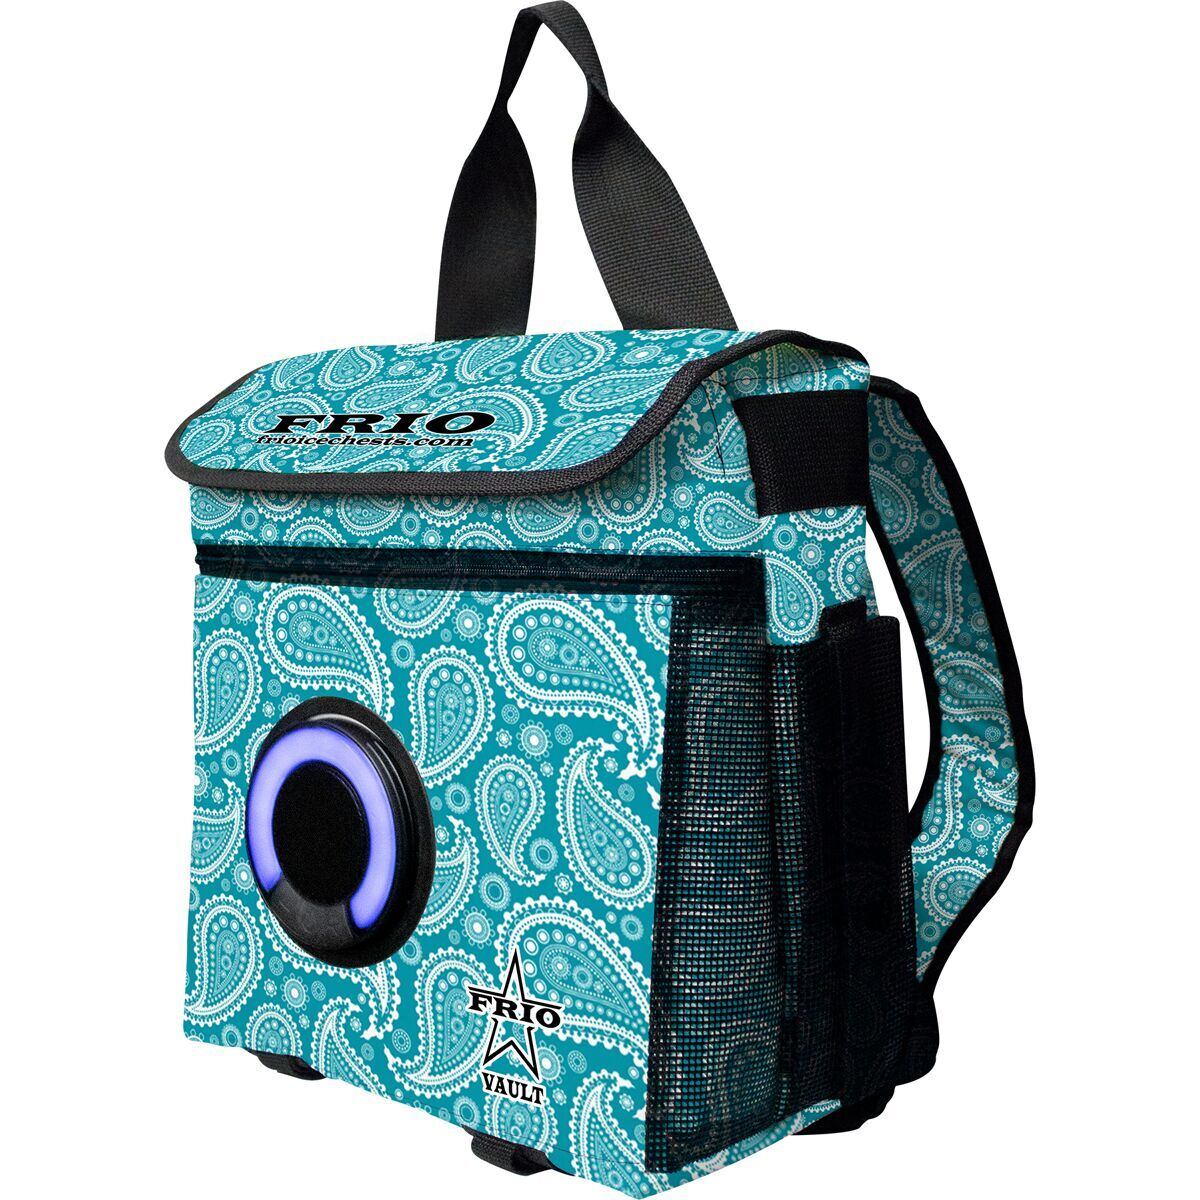 aaaad6fc7a7c Teal Backpack Cooler | Building Materials Bargain Center